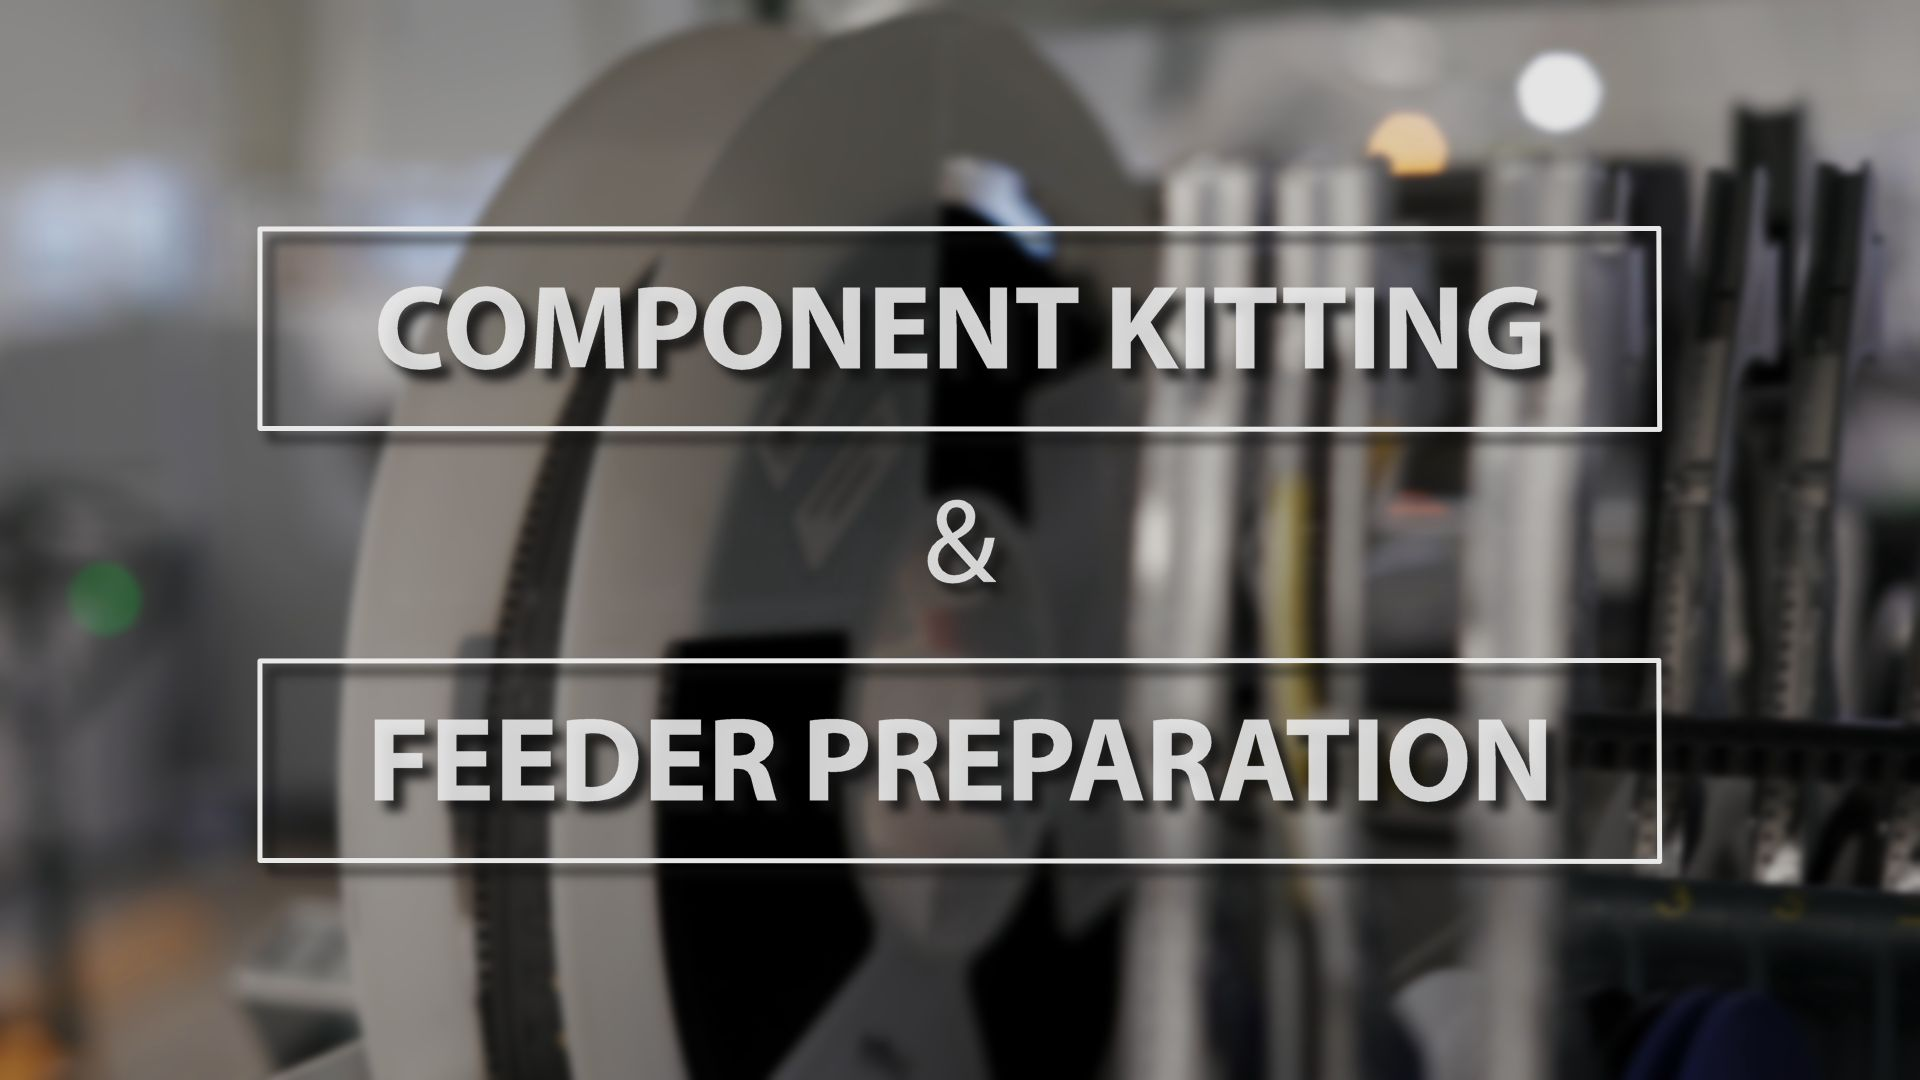 Technology Thursday: Component Kitting & Feeder Preparation